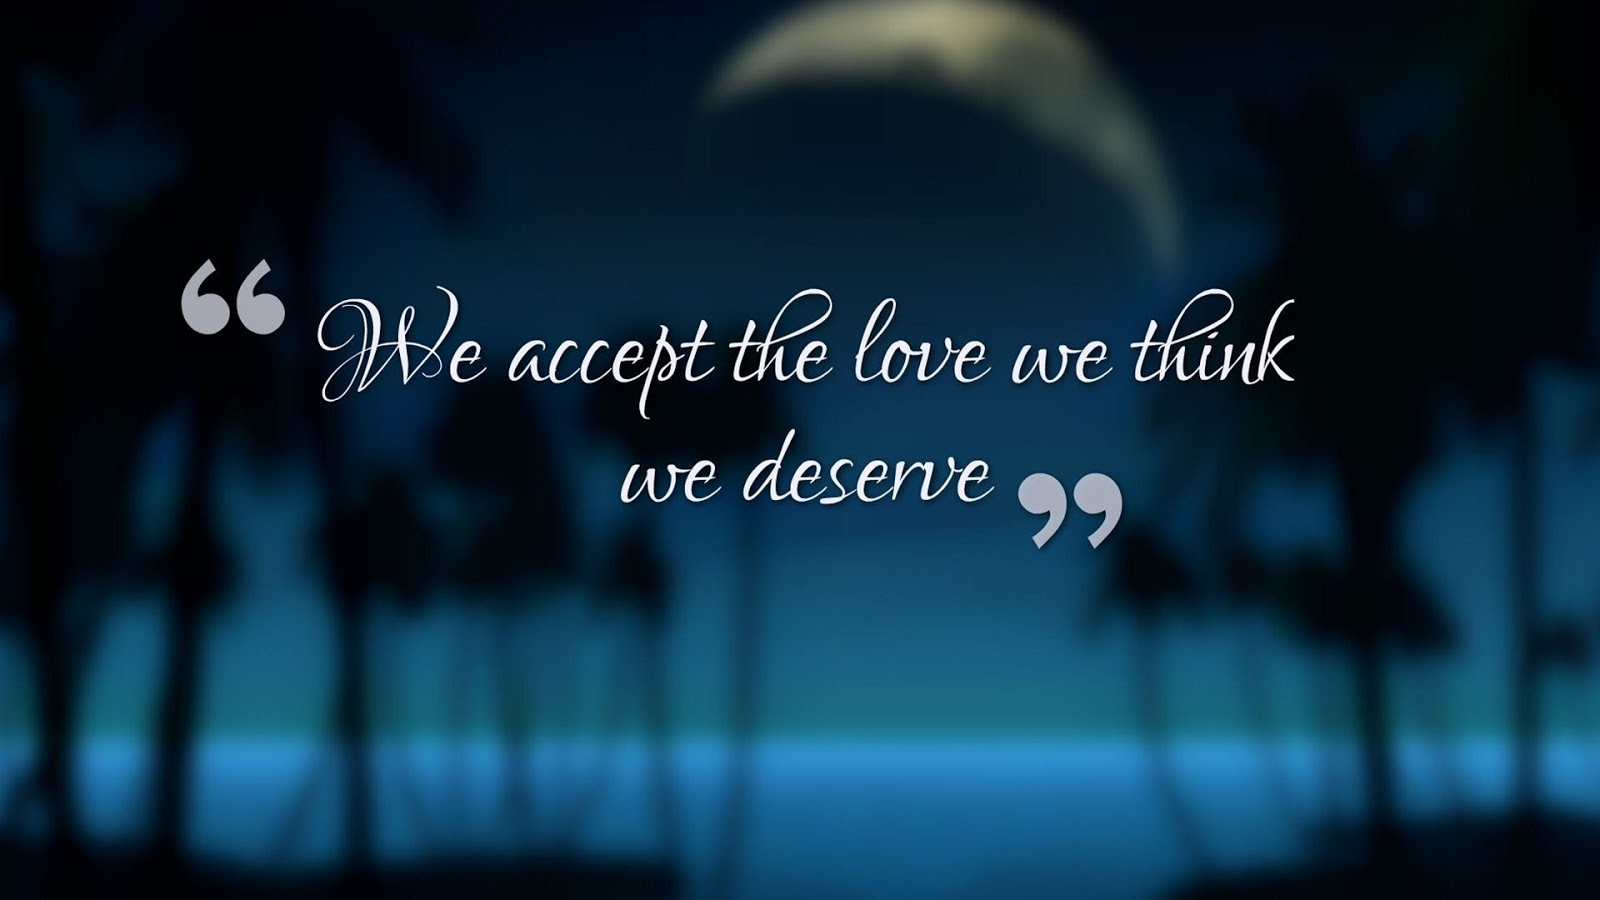 Love Images With: Love Quotes Images and love couple images   Best collection of love images ...